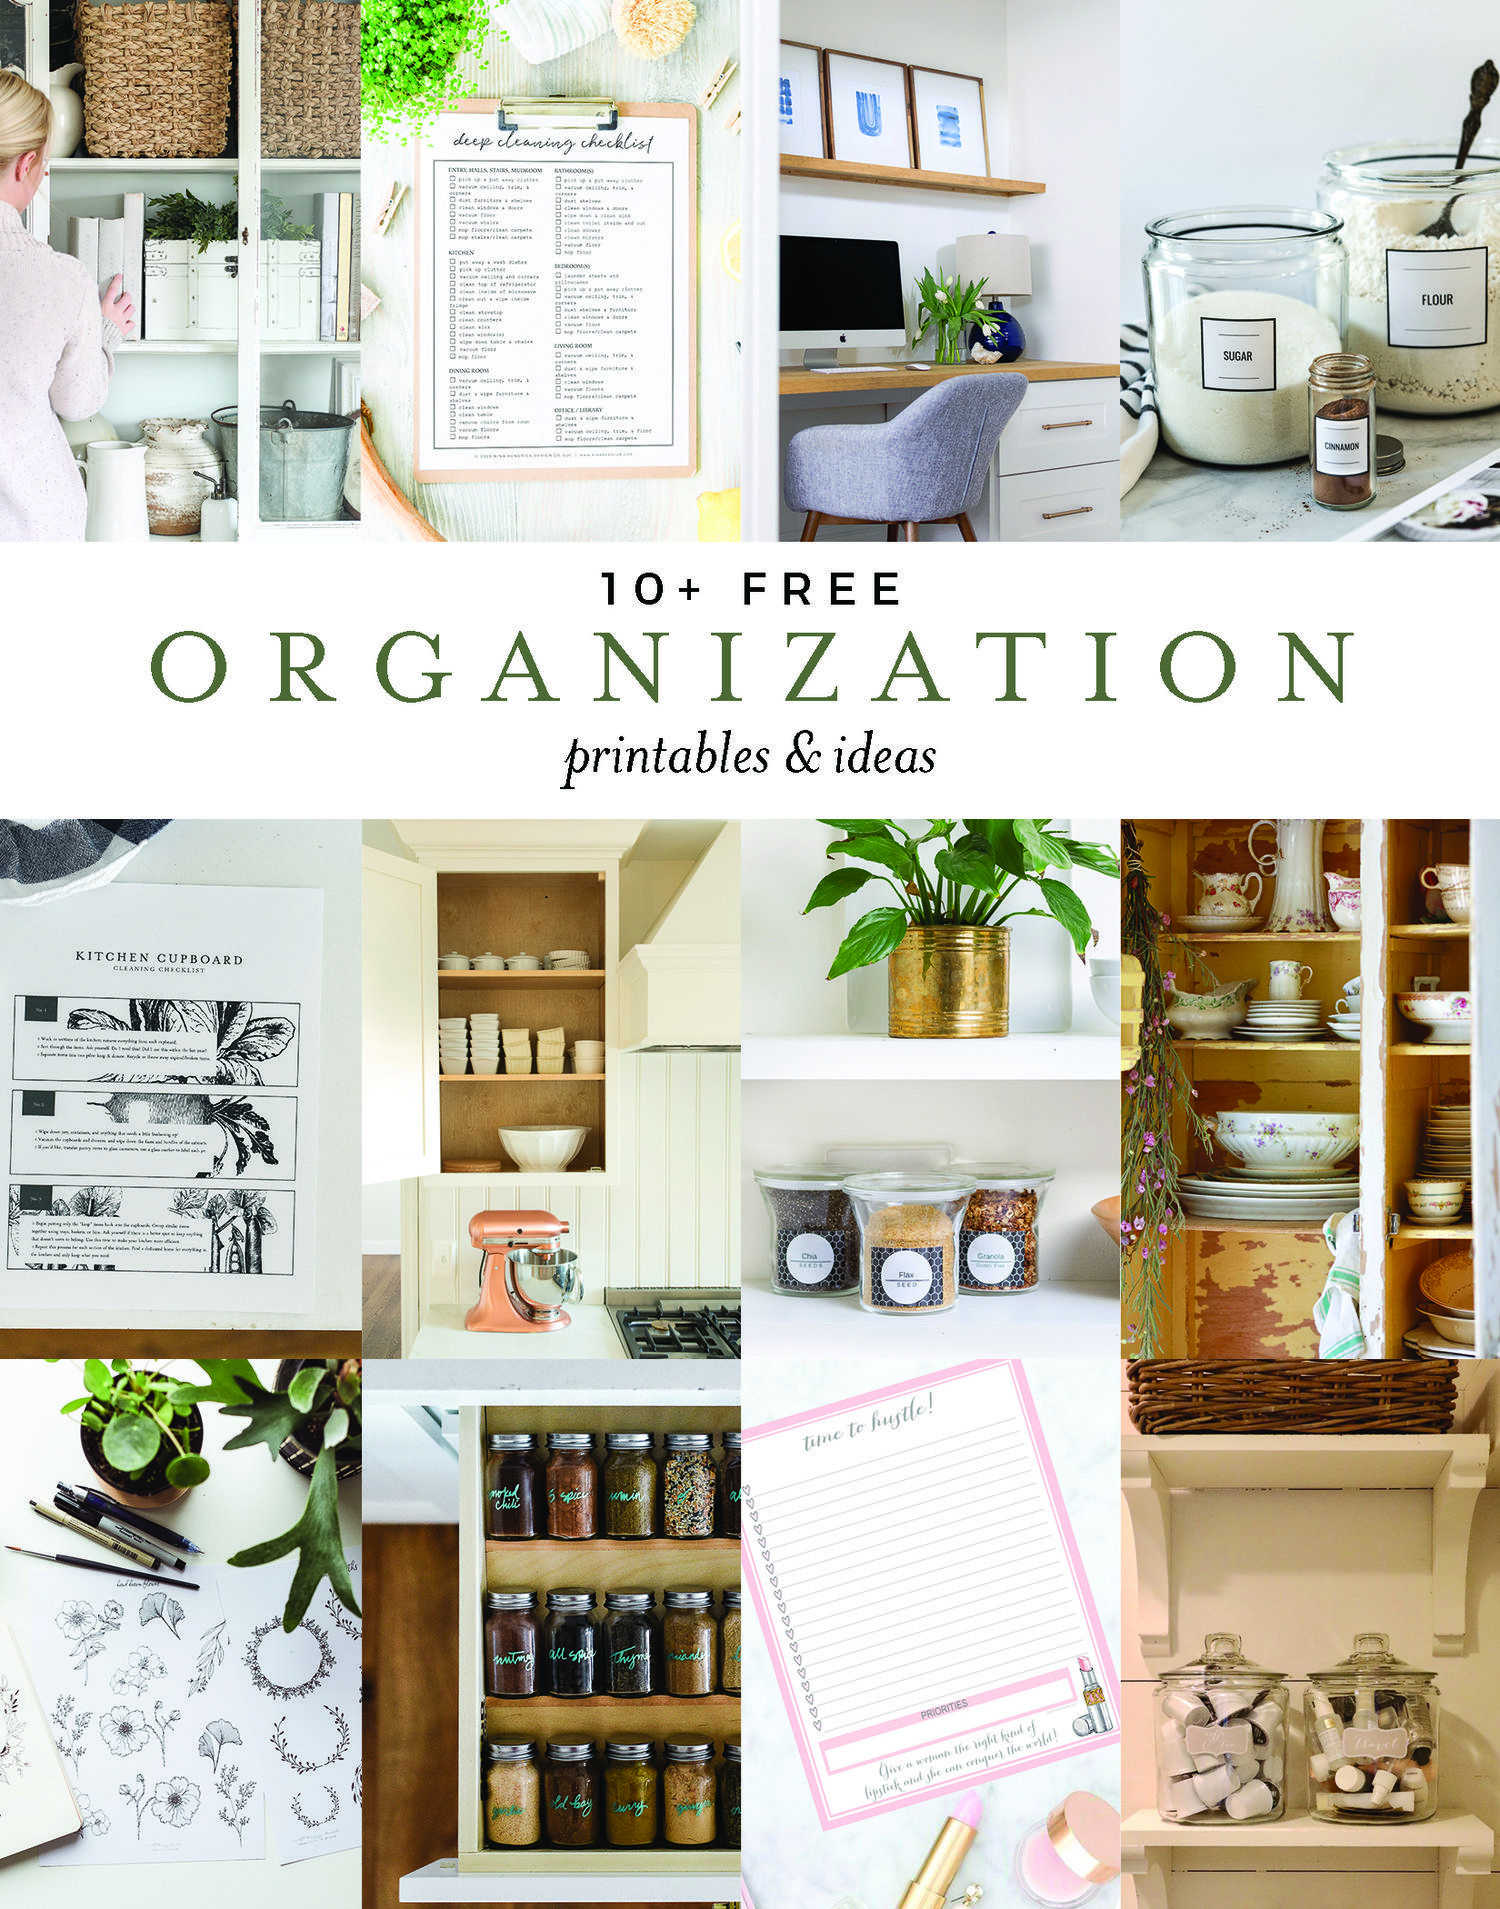 Over 10 Genius Organization Tips And Tricks With Free Printable To Help Organize Your Home Boxwoodavenue